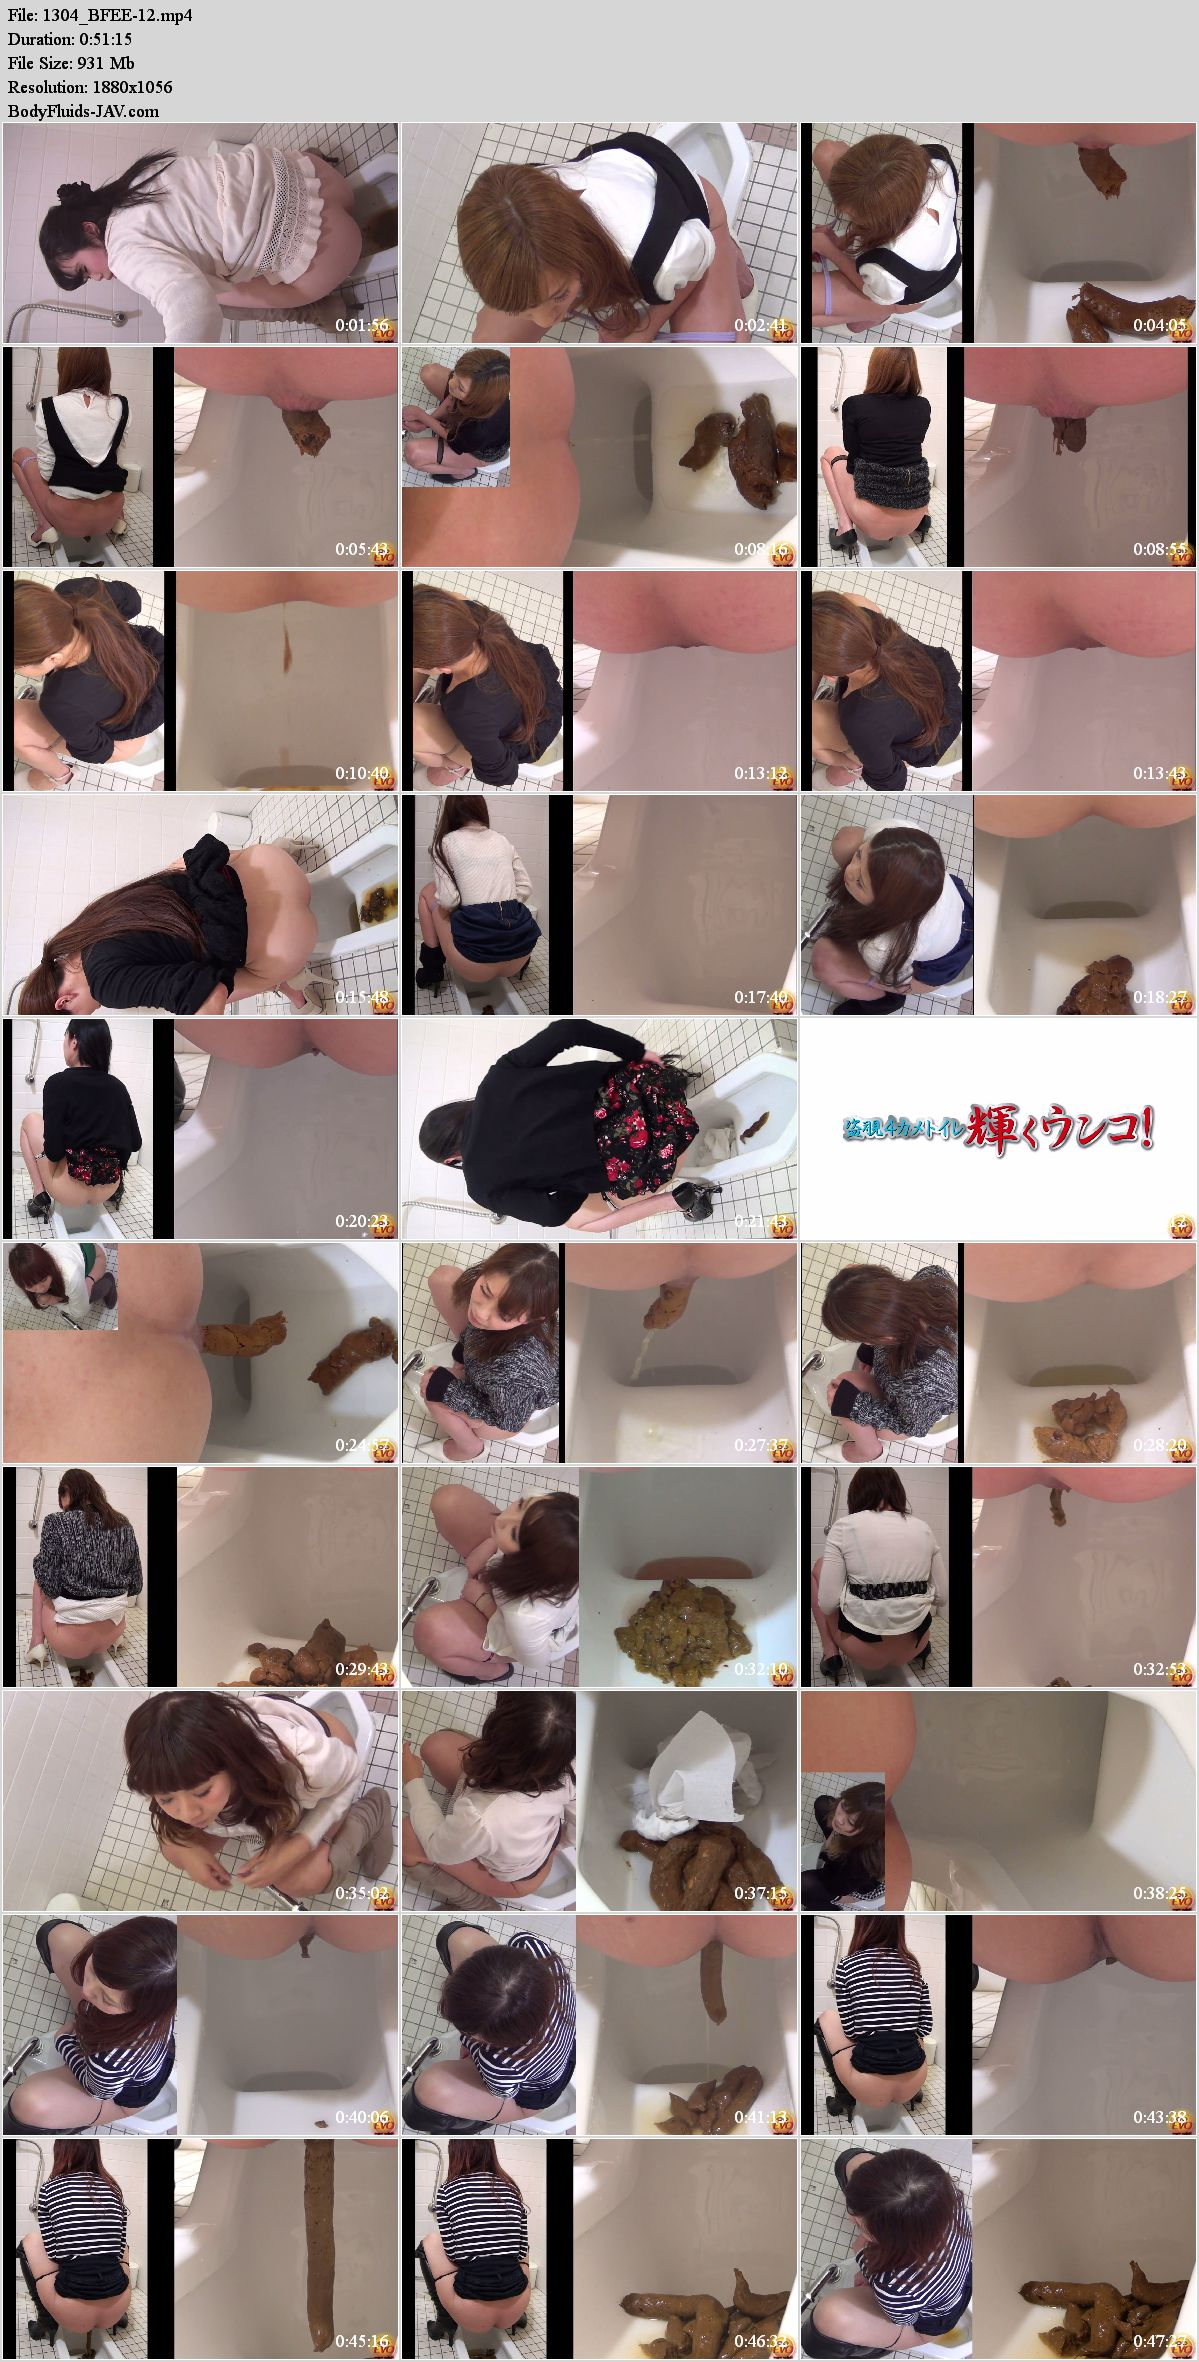 BFEE-12 Voyeur in toilet 4 angle view defecation girls. (HD 1080p)